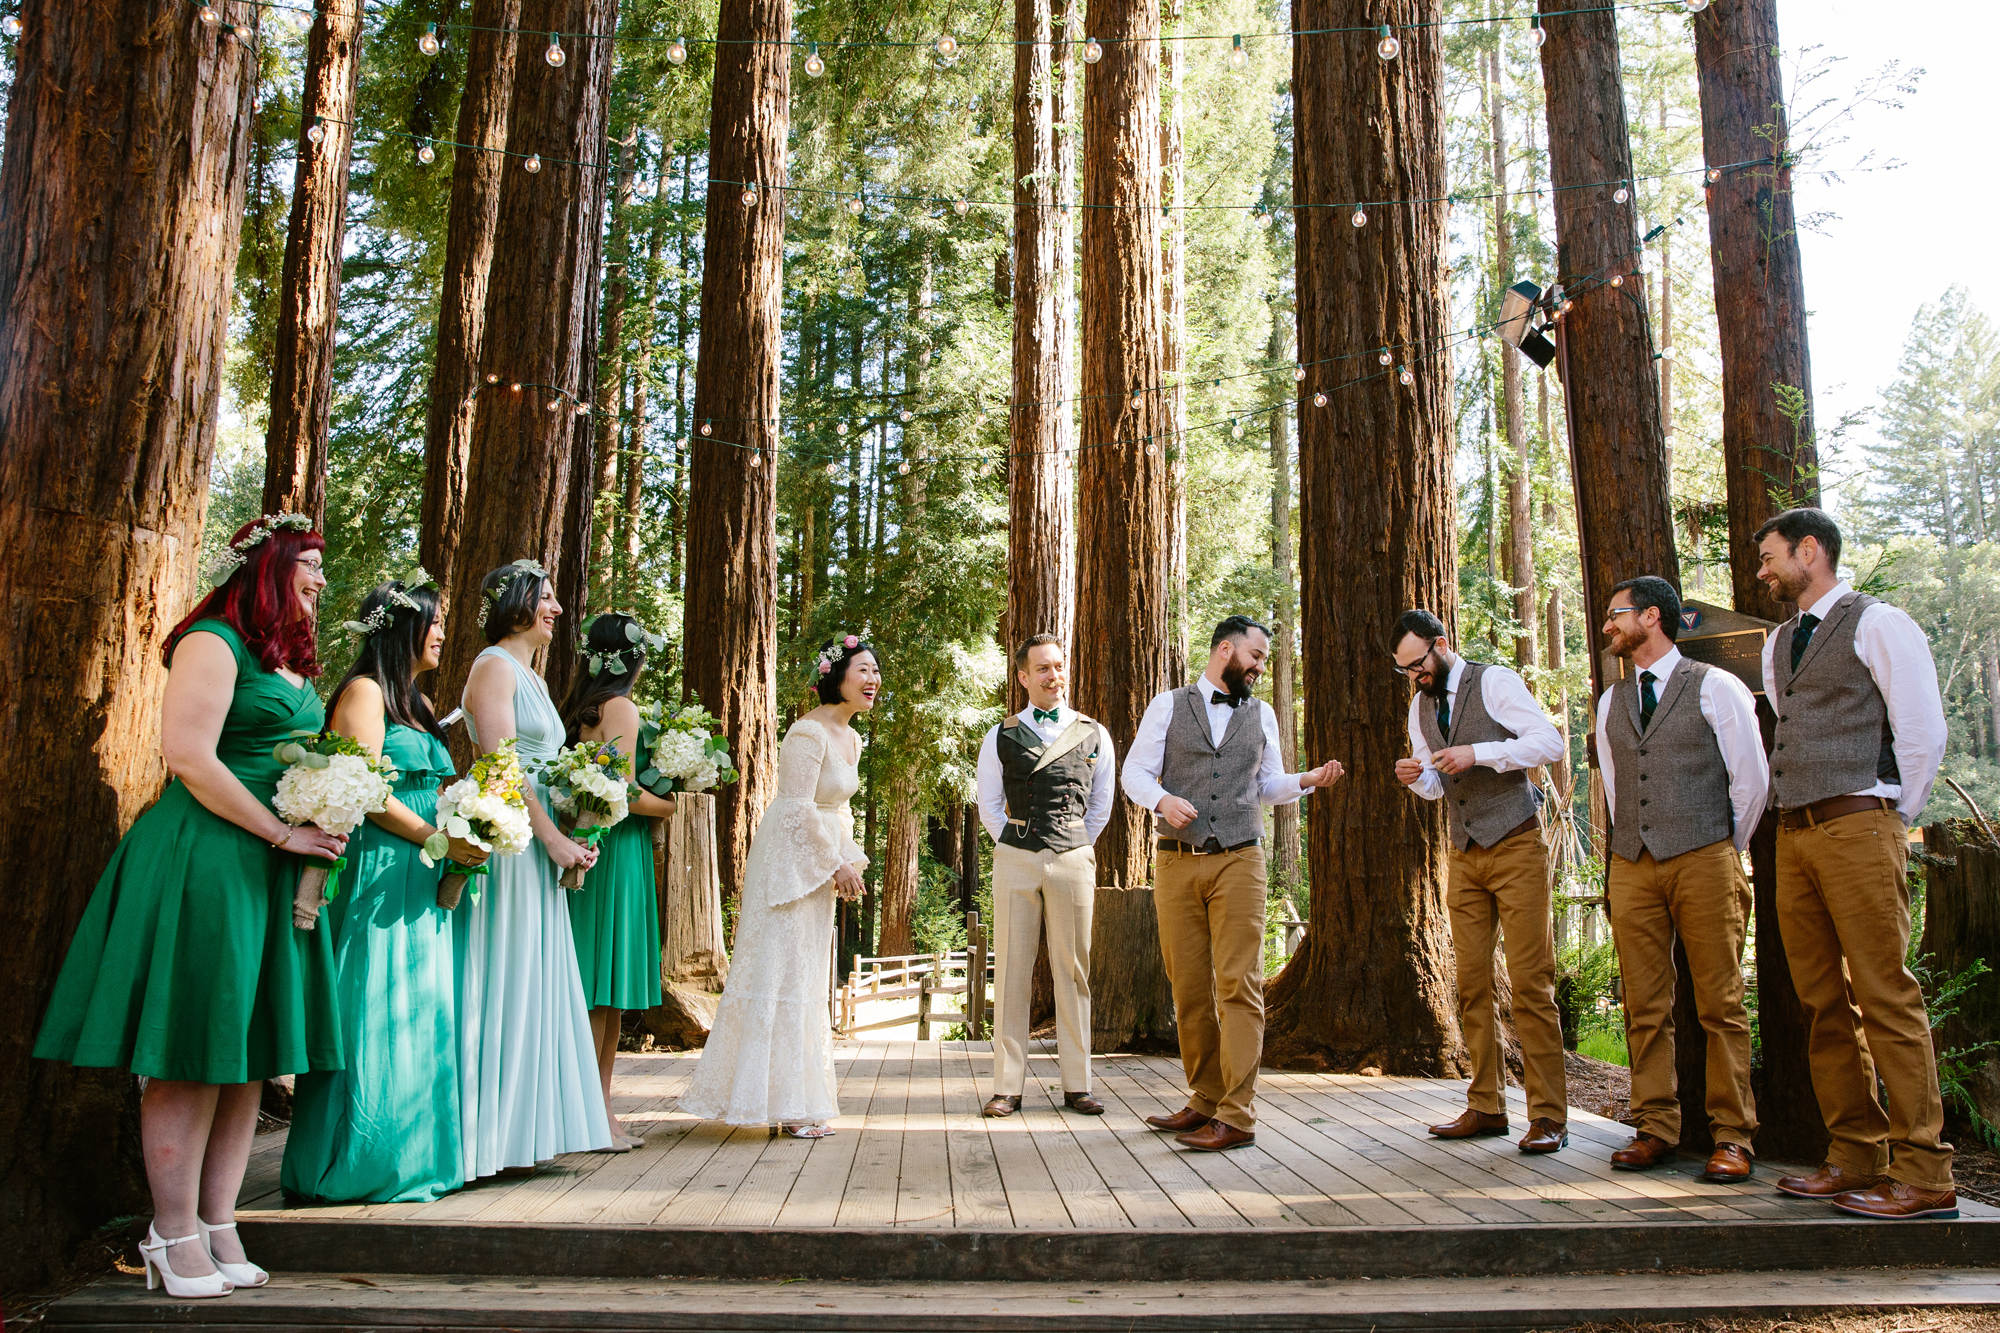 Wedding in Redwood Trees California